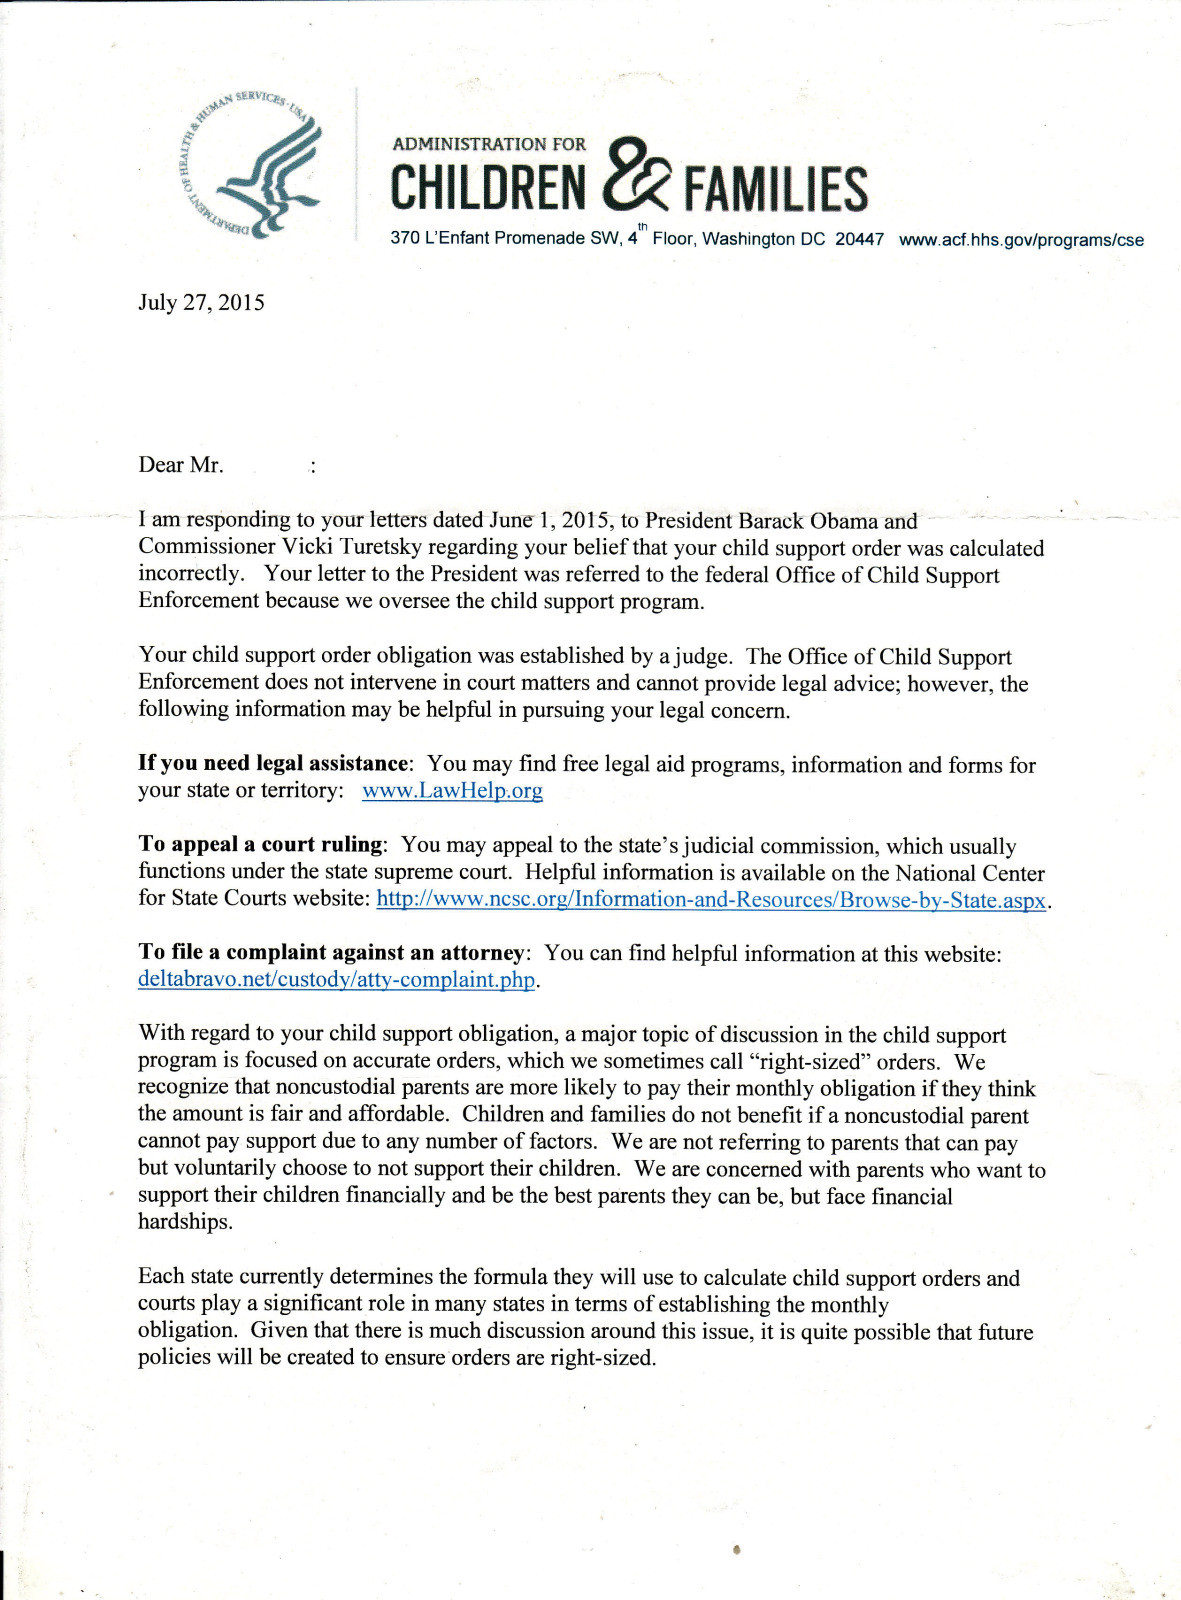 Reply Letter From The United States President Barack Obama and Vicki Turetsky The Federal Goverment Commissioner of Child Support Enforcement in Washington D.C.